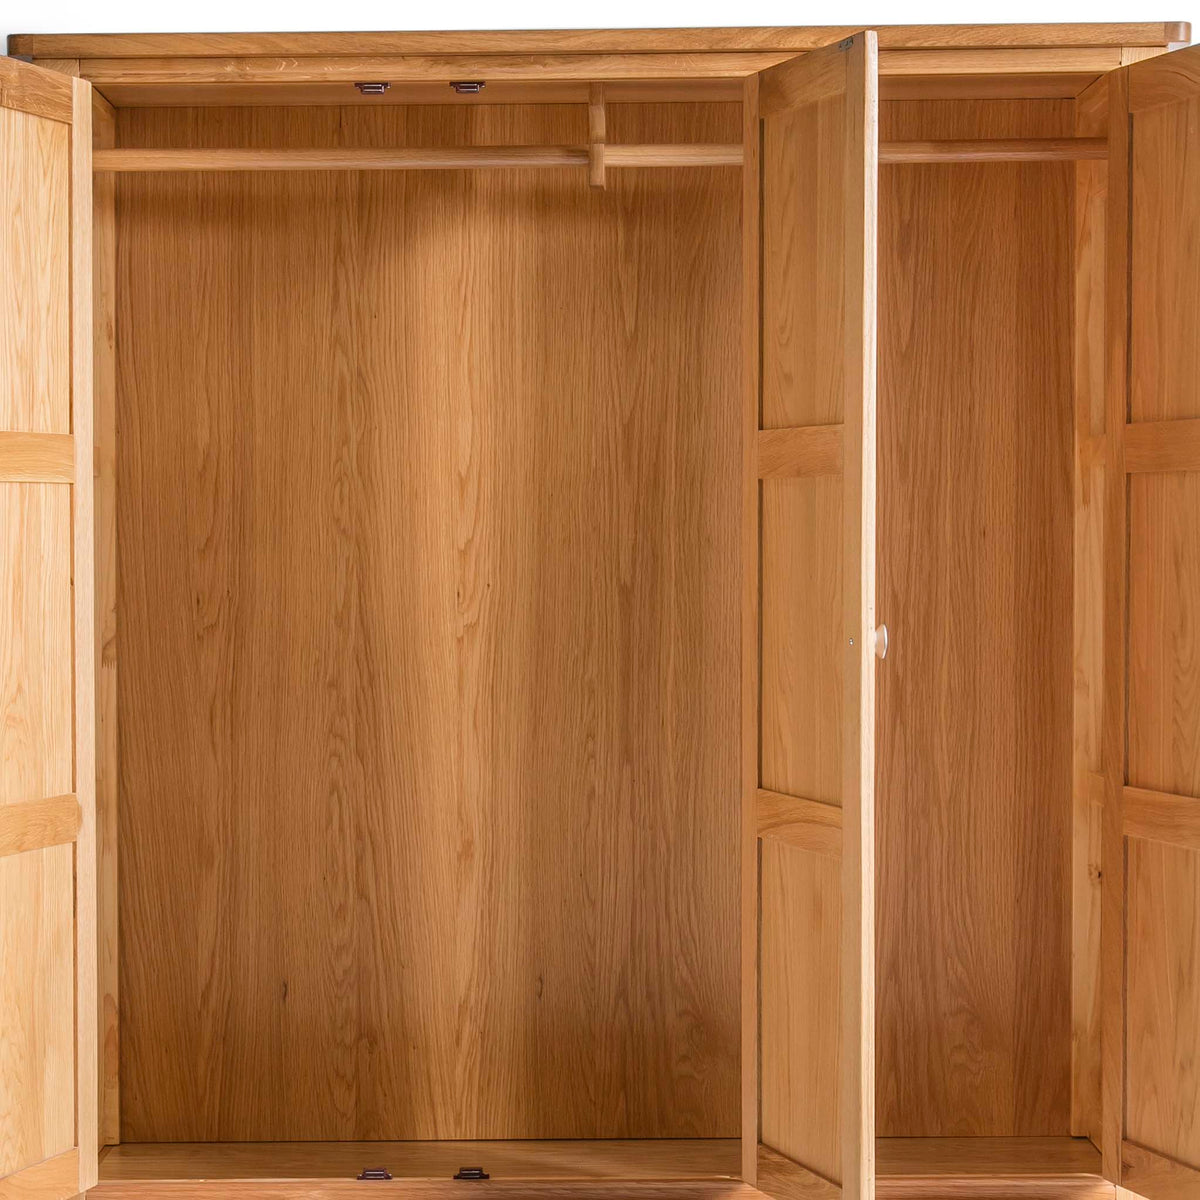 Hampshire Oak Triple Wardrobe with Drawers - Close up of inside wardrobe doors